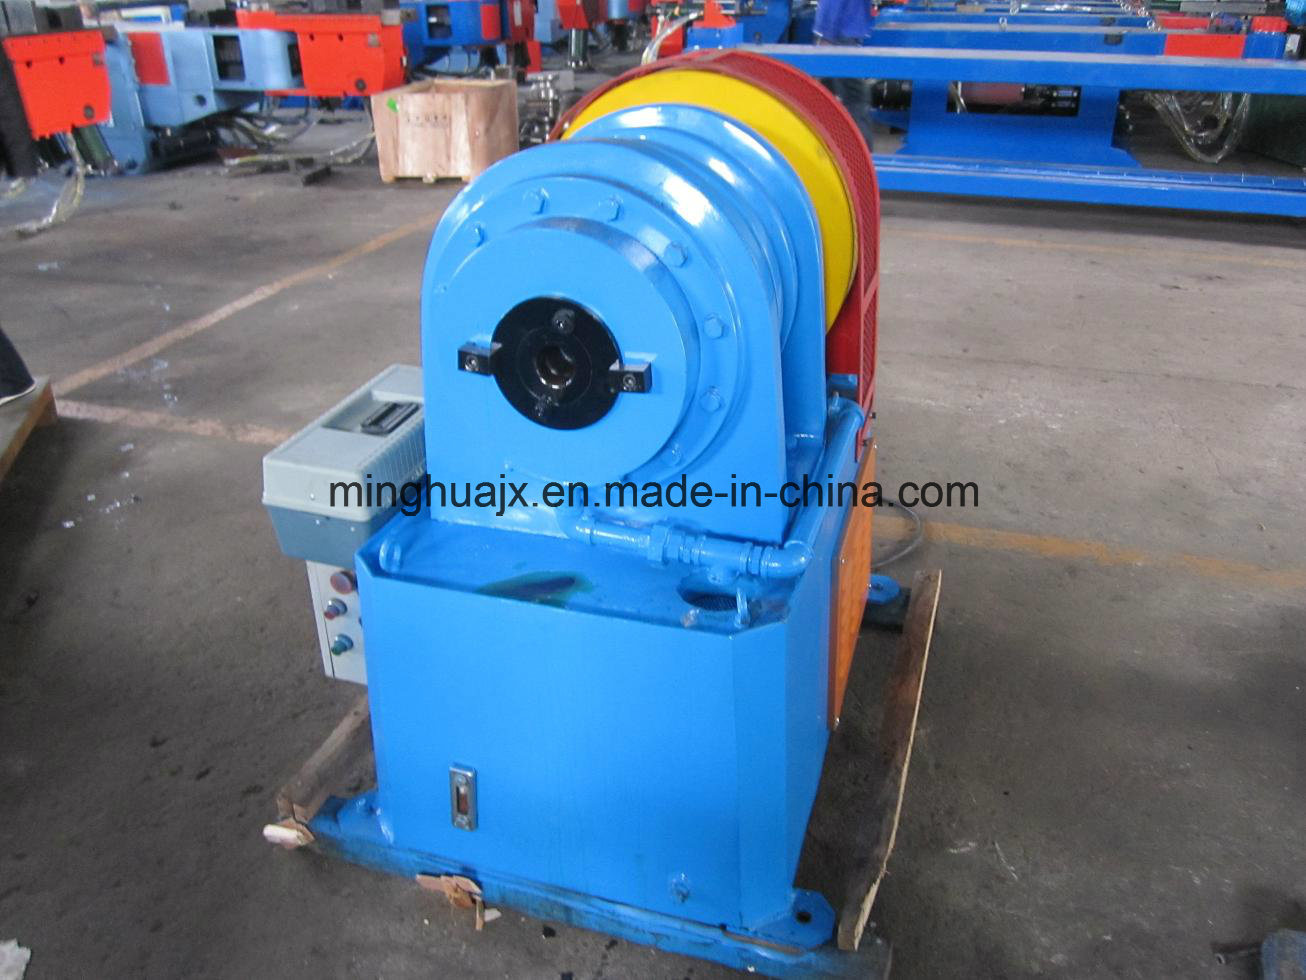 China Hot Sale Pipe Tapering Machine Zsg-50